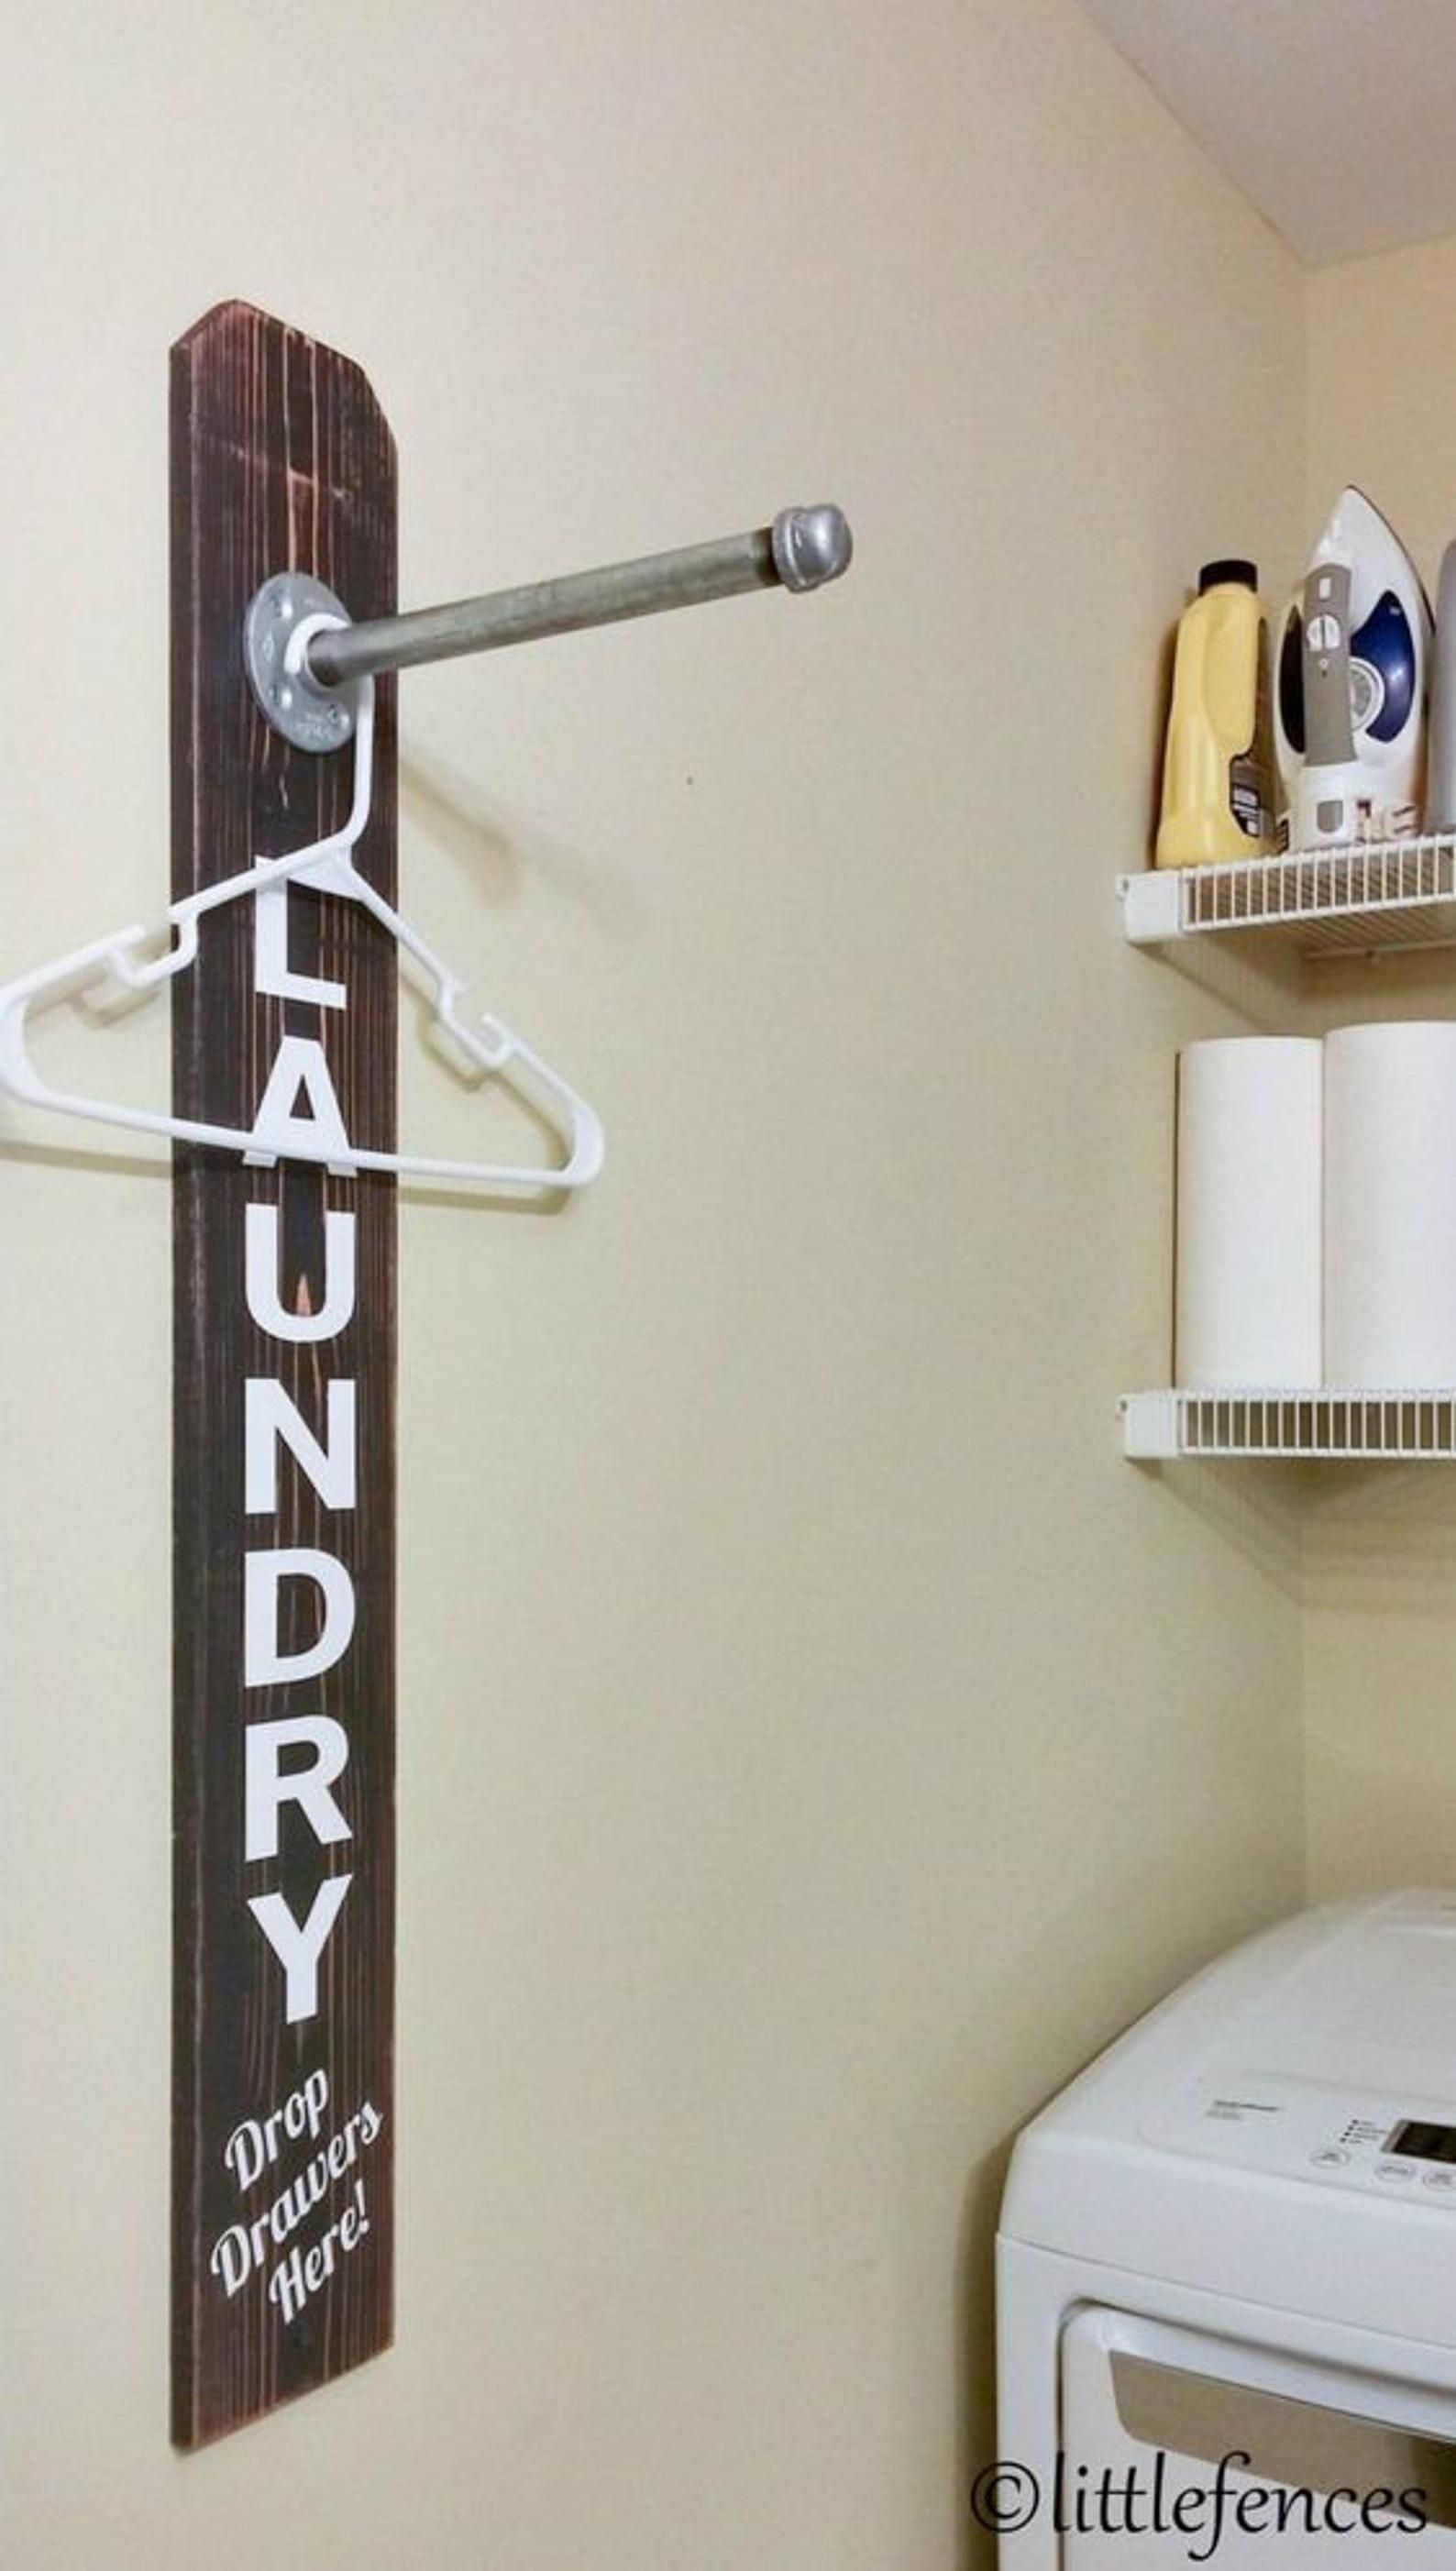 Photo of Laundry Room Sign   Laundry Room Organization   Clothing Rack   Wood Laundry Sign   Pipe Rack   Clothes Hanger   Rustic Custom Laundry Sign